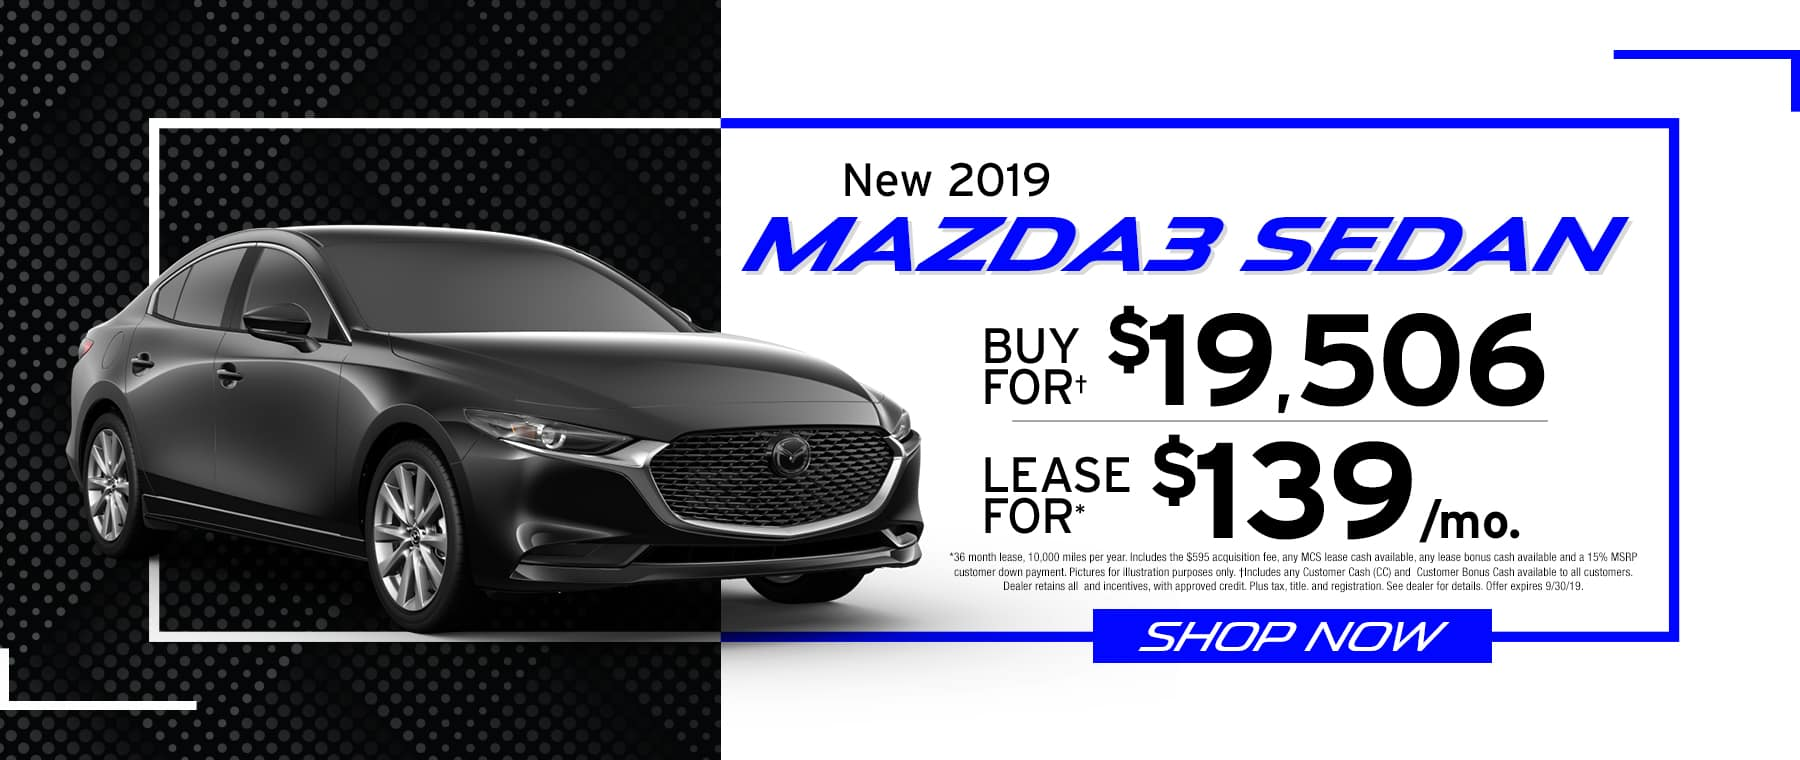 2019 Mazda3 Sedan	$139 Per Month OR Buy For $19,506